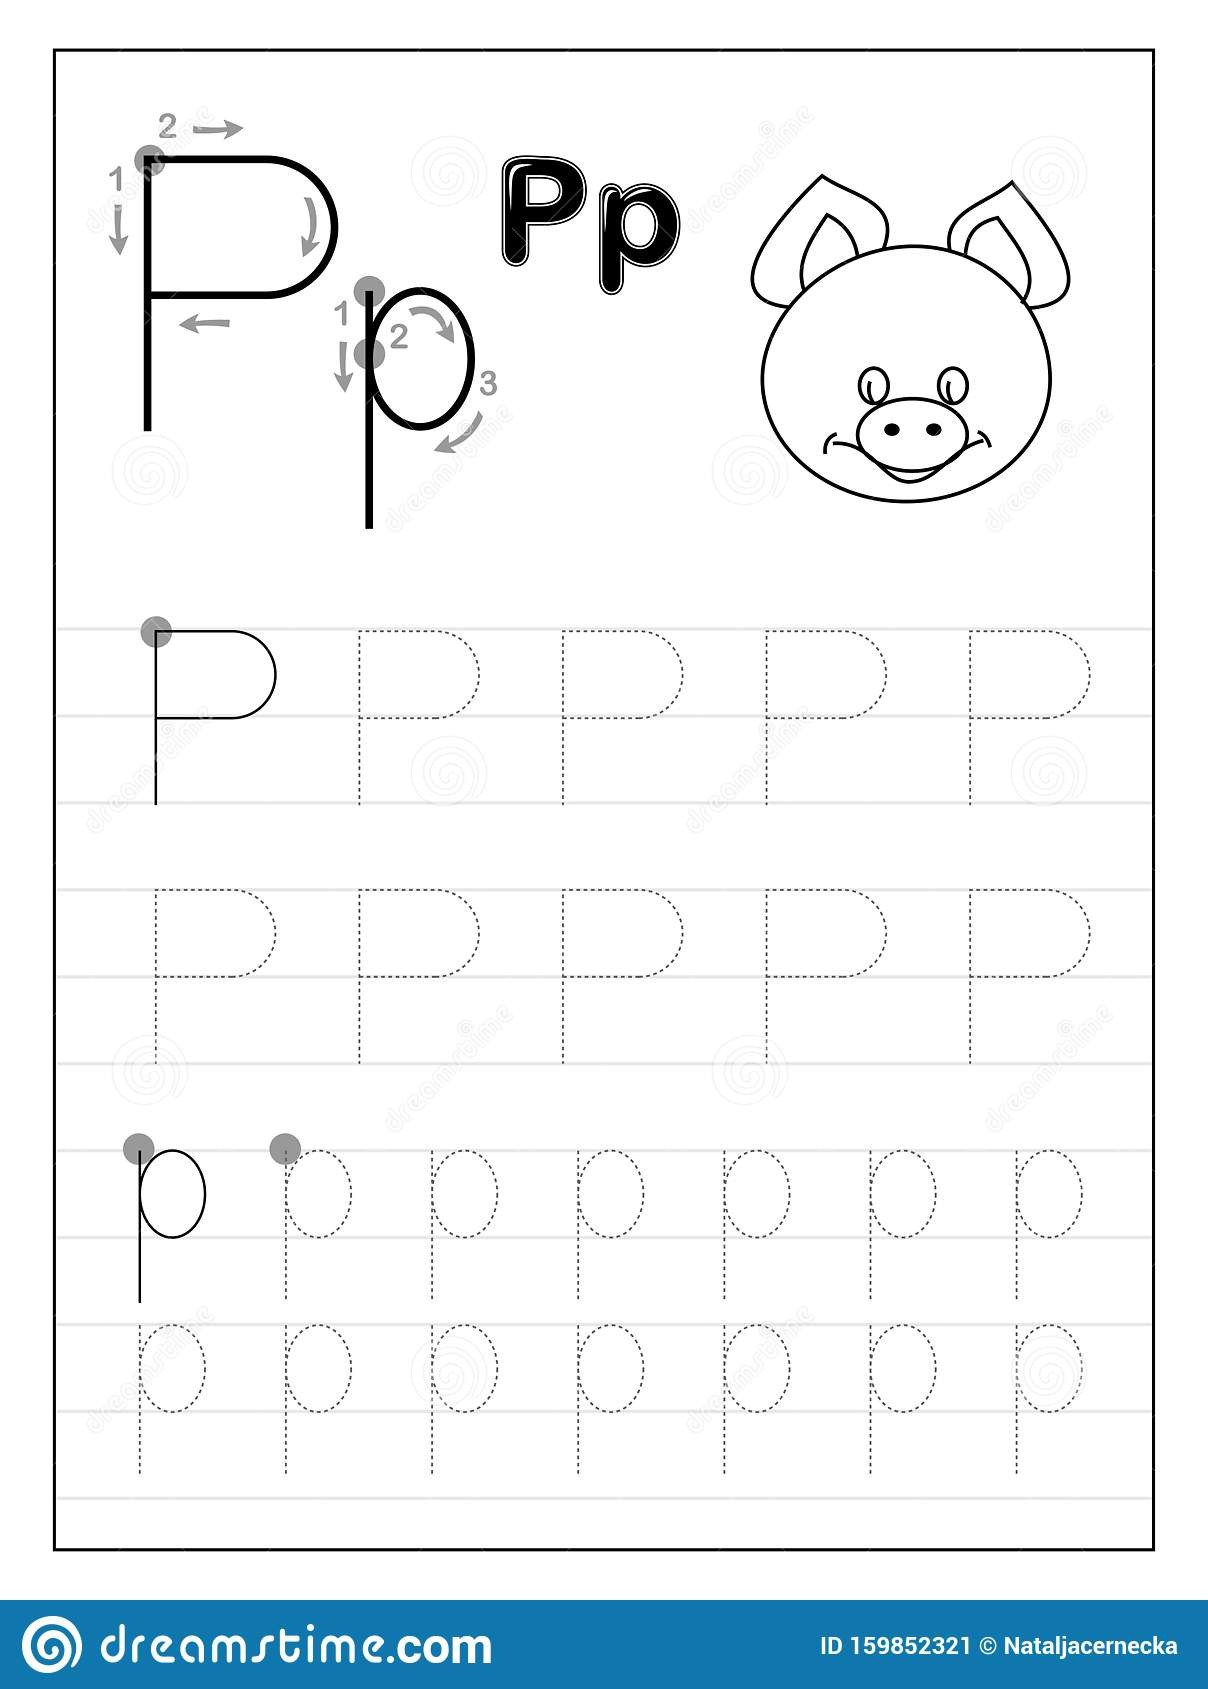 Letter P Tracing Worksheet Tracing Alphabet Letter P Black and White Educational Pages